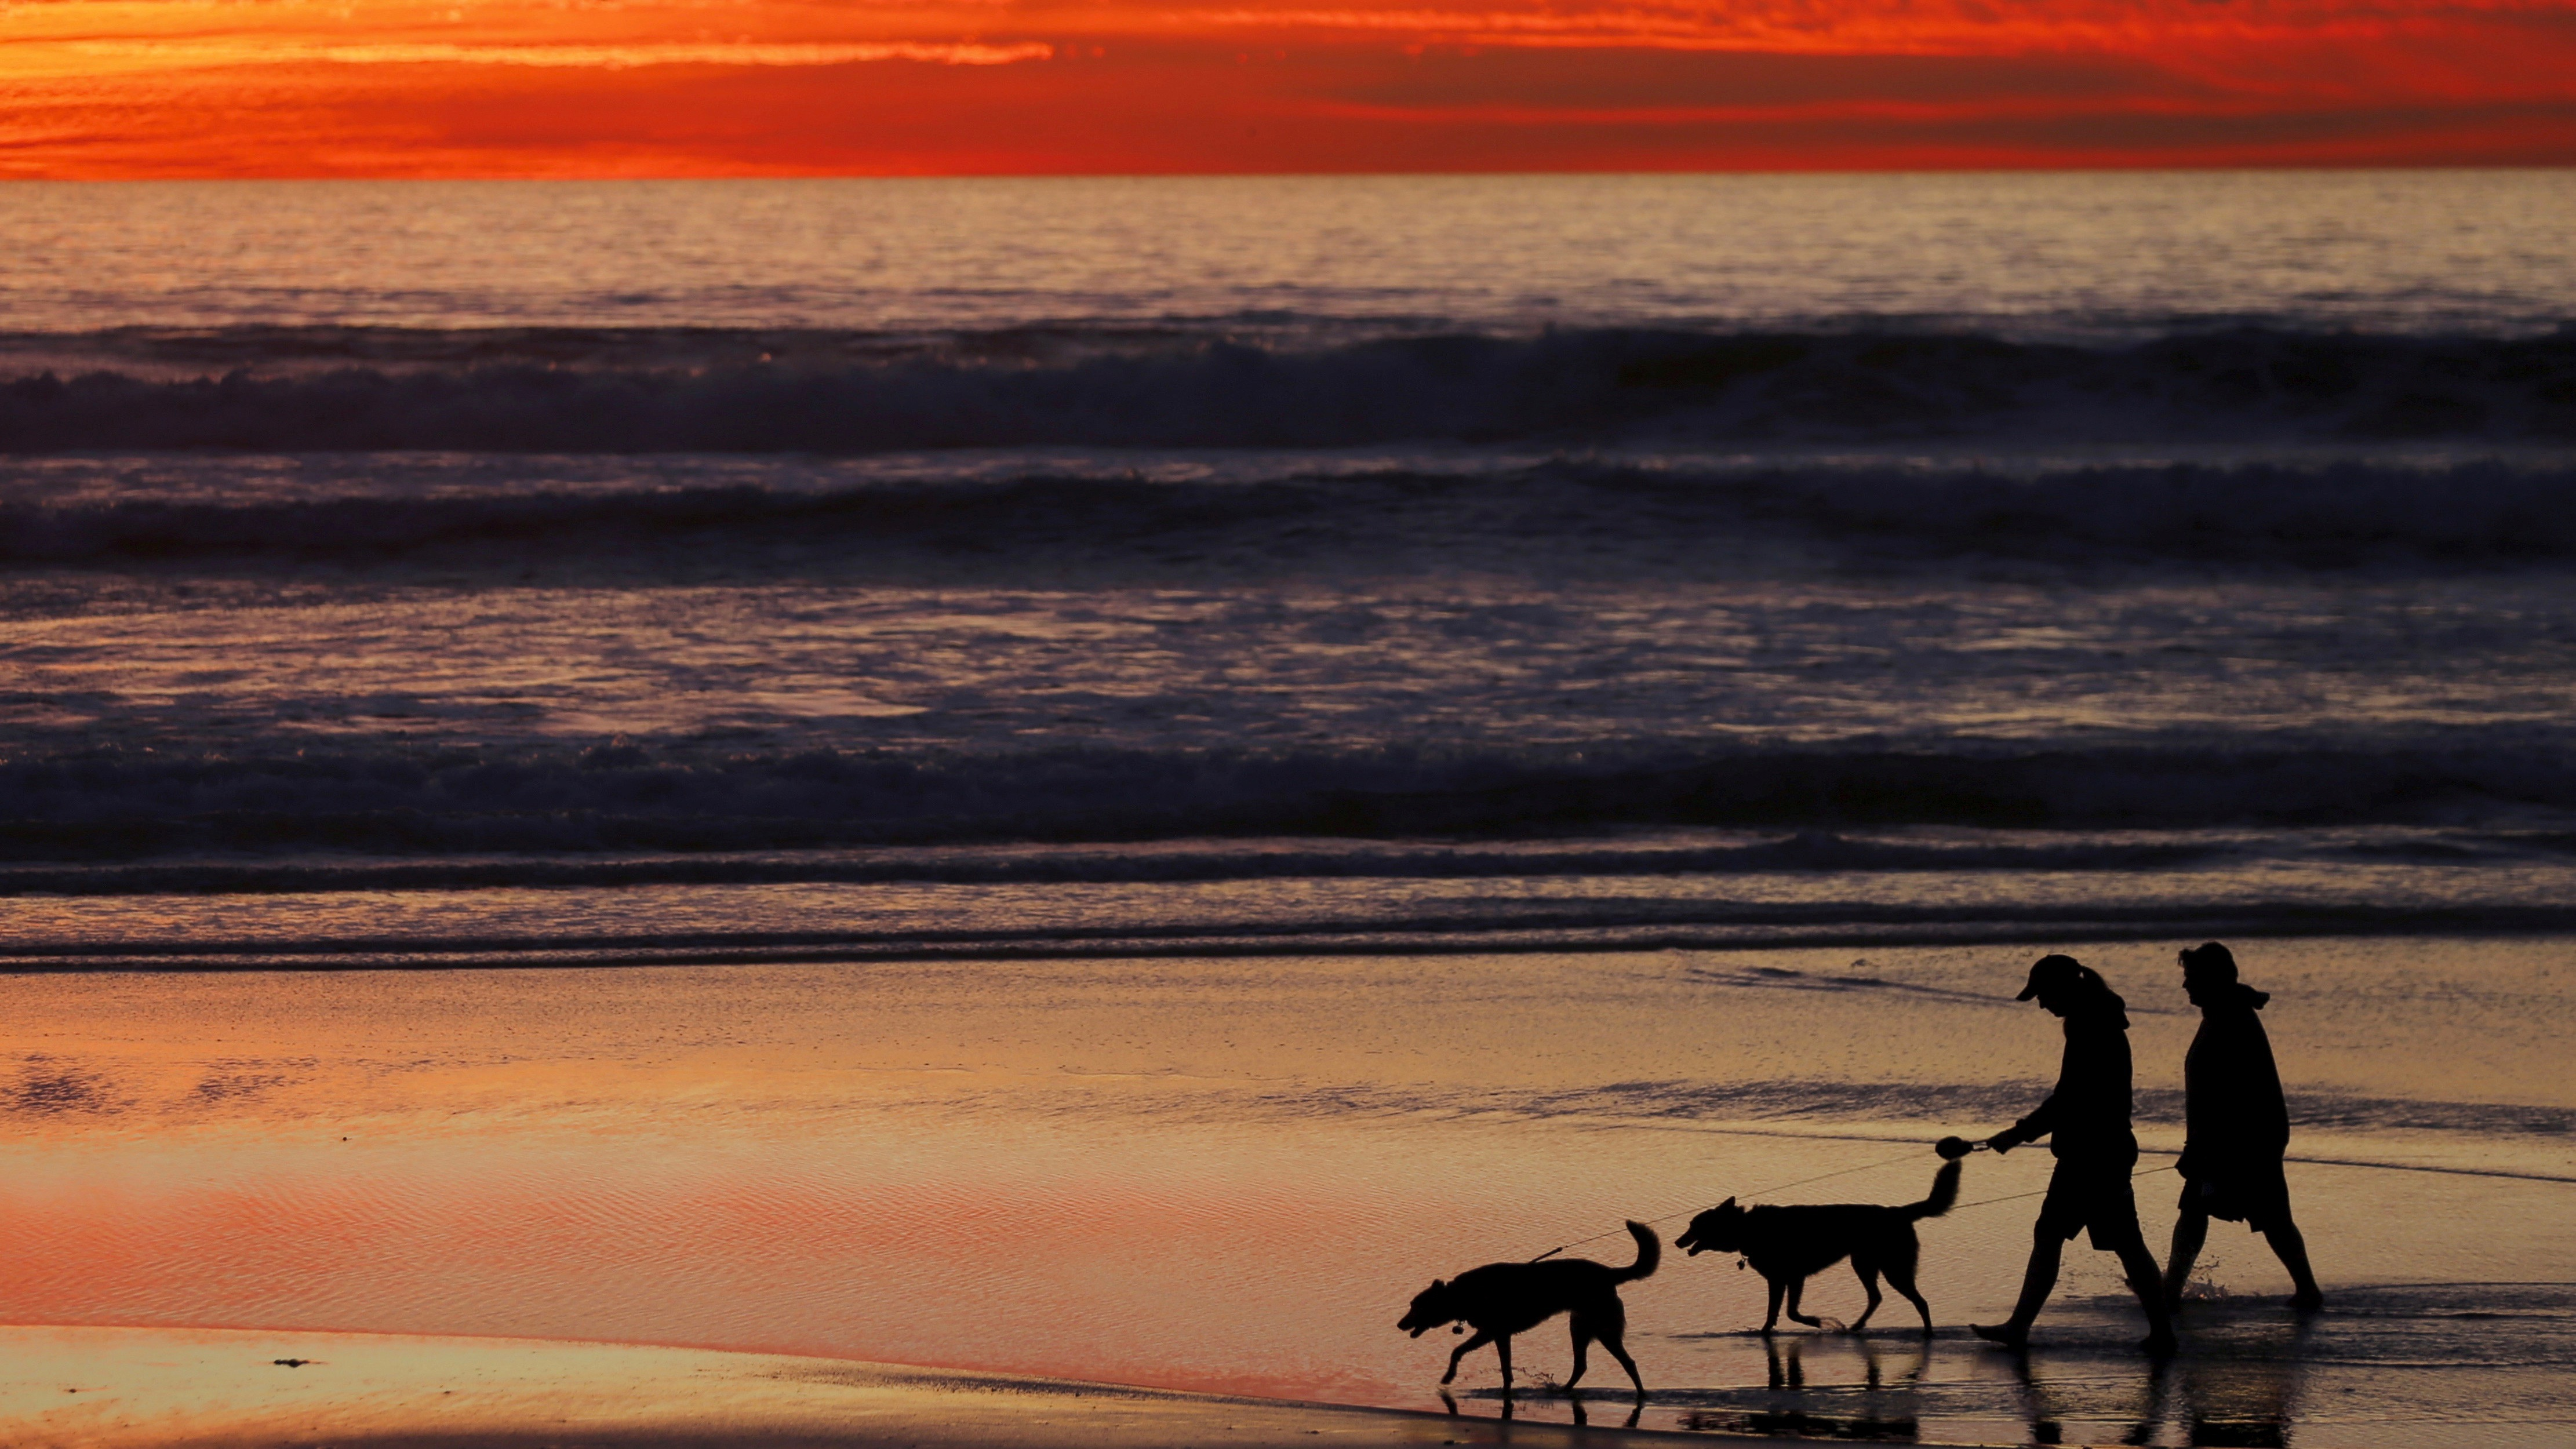 People and dogs on beach at sunset.